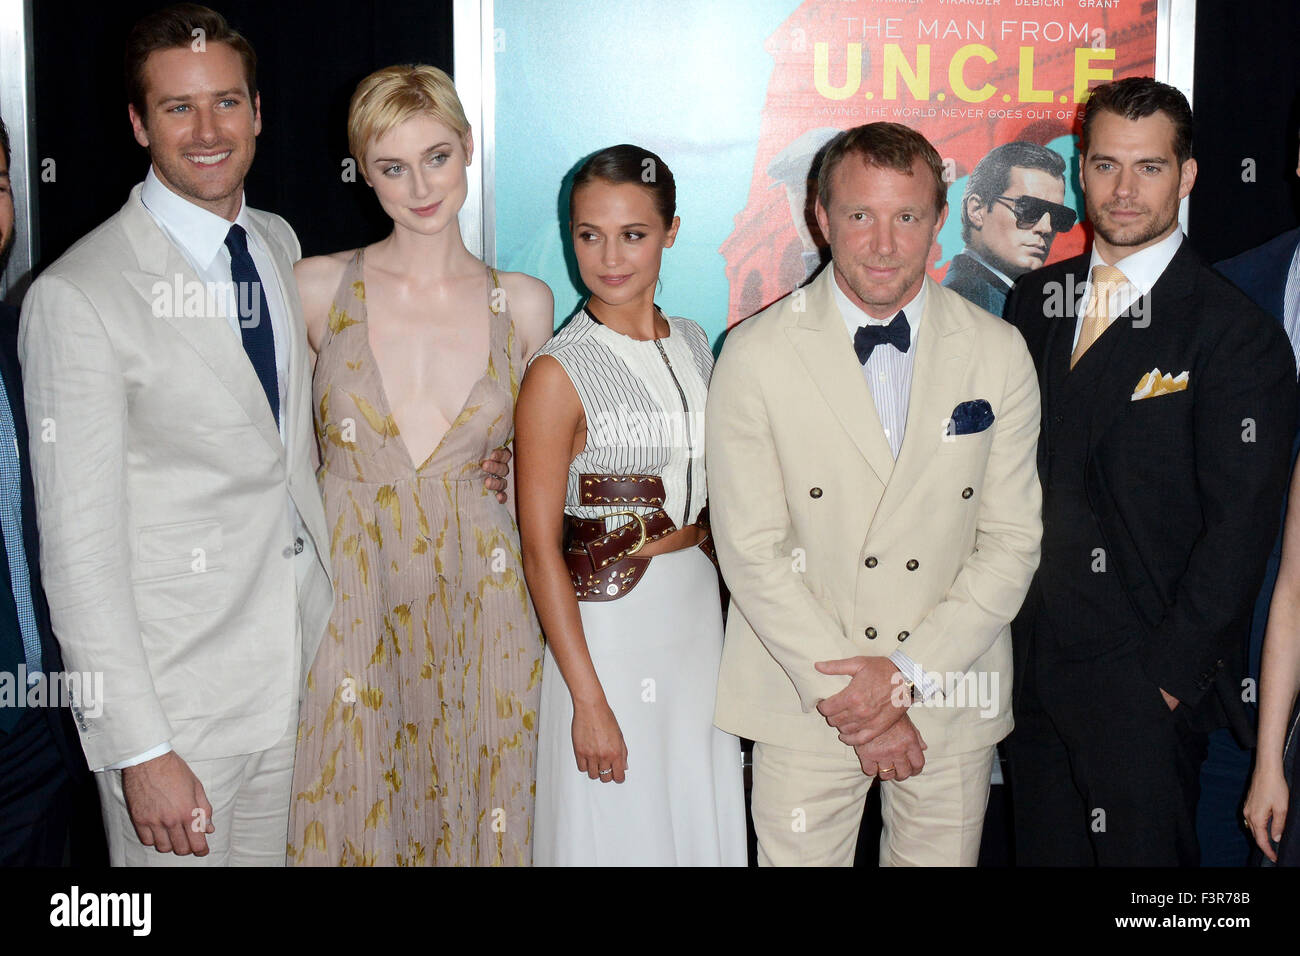 Elizabeth Debicki And Alicia Vikander High Resolution Stock Photography And Images Alamy